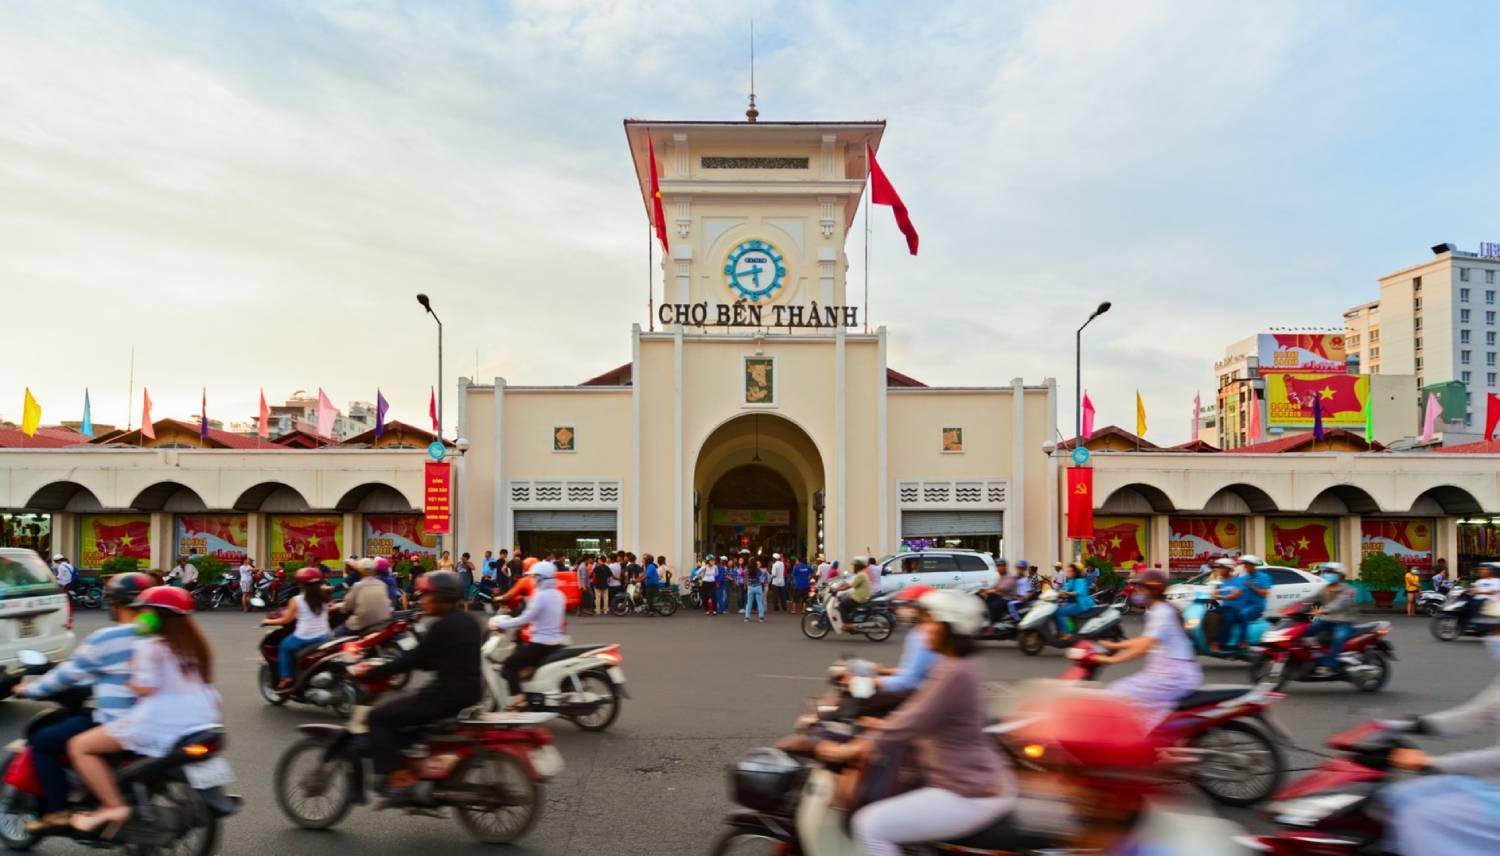 Ben Thanh Market - Things To Do In Ho Chi Minh City